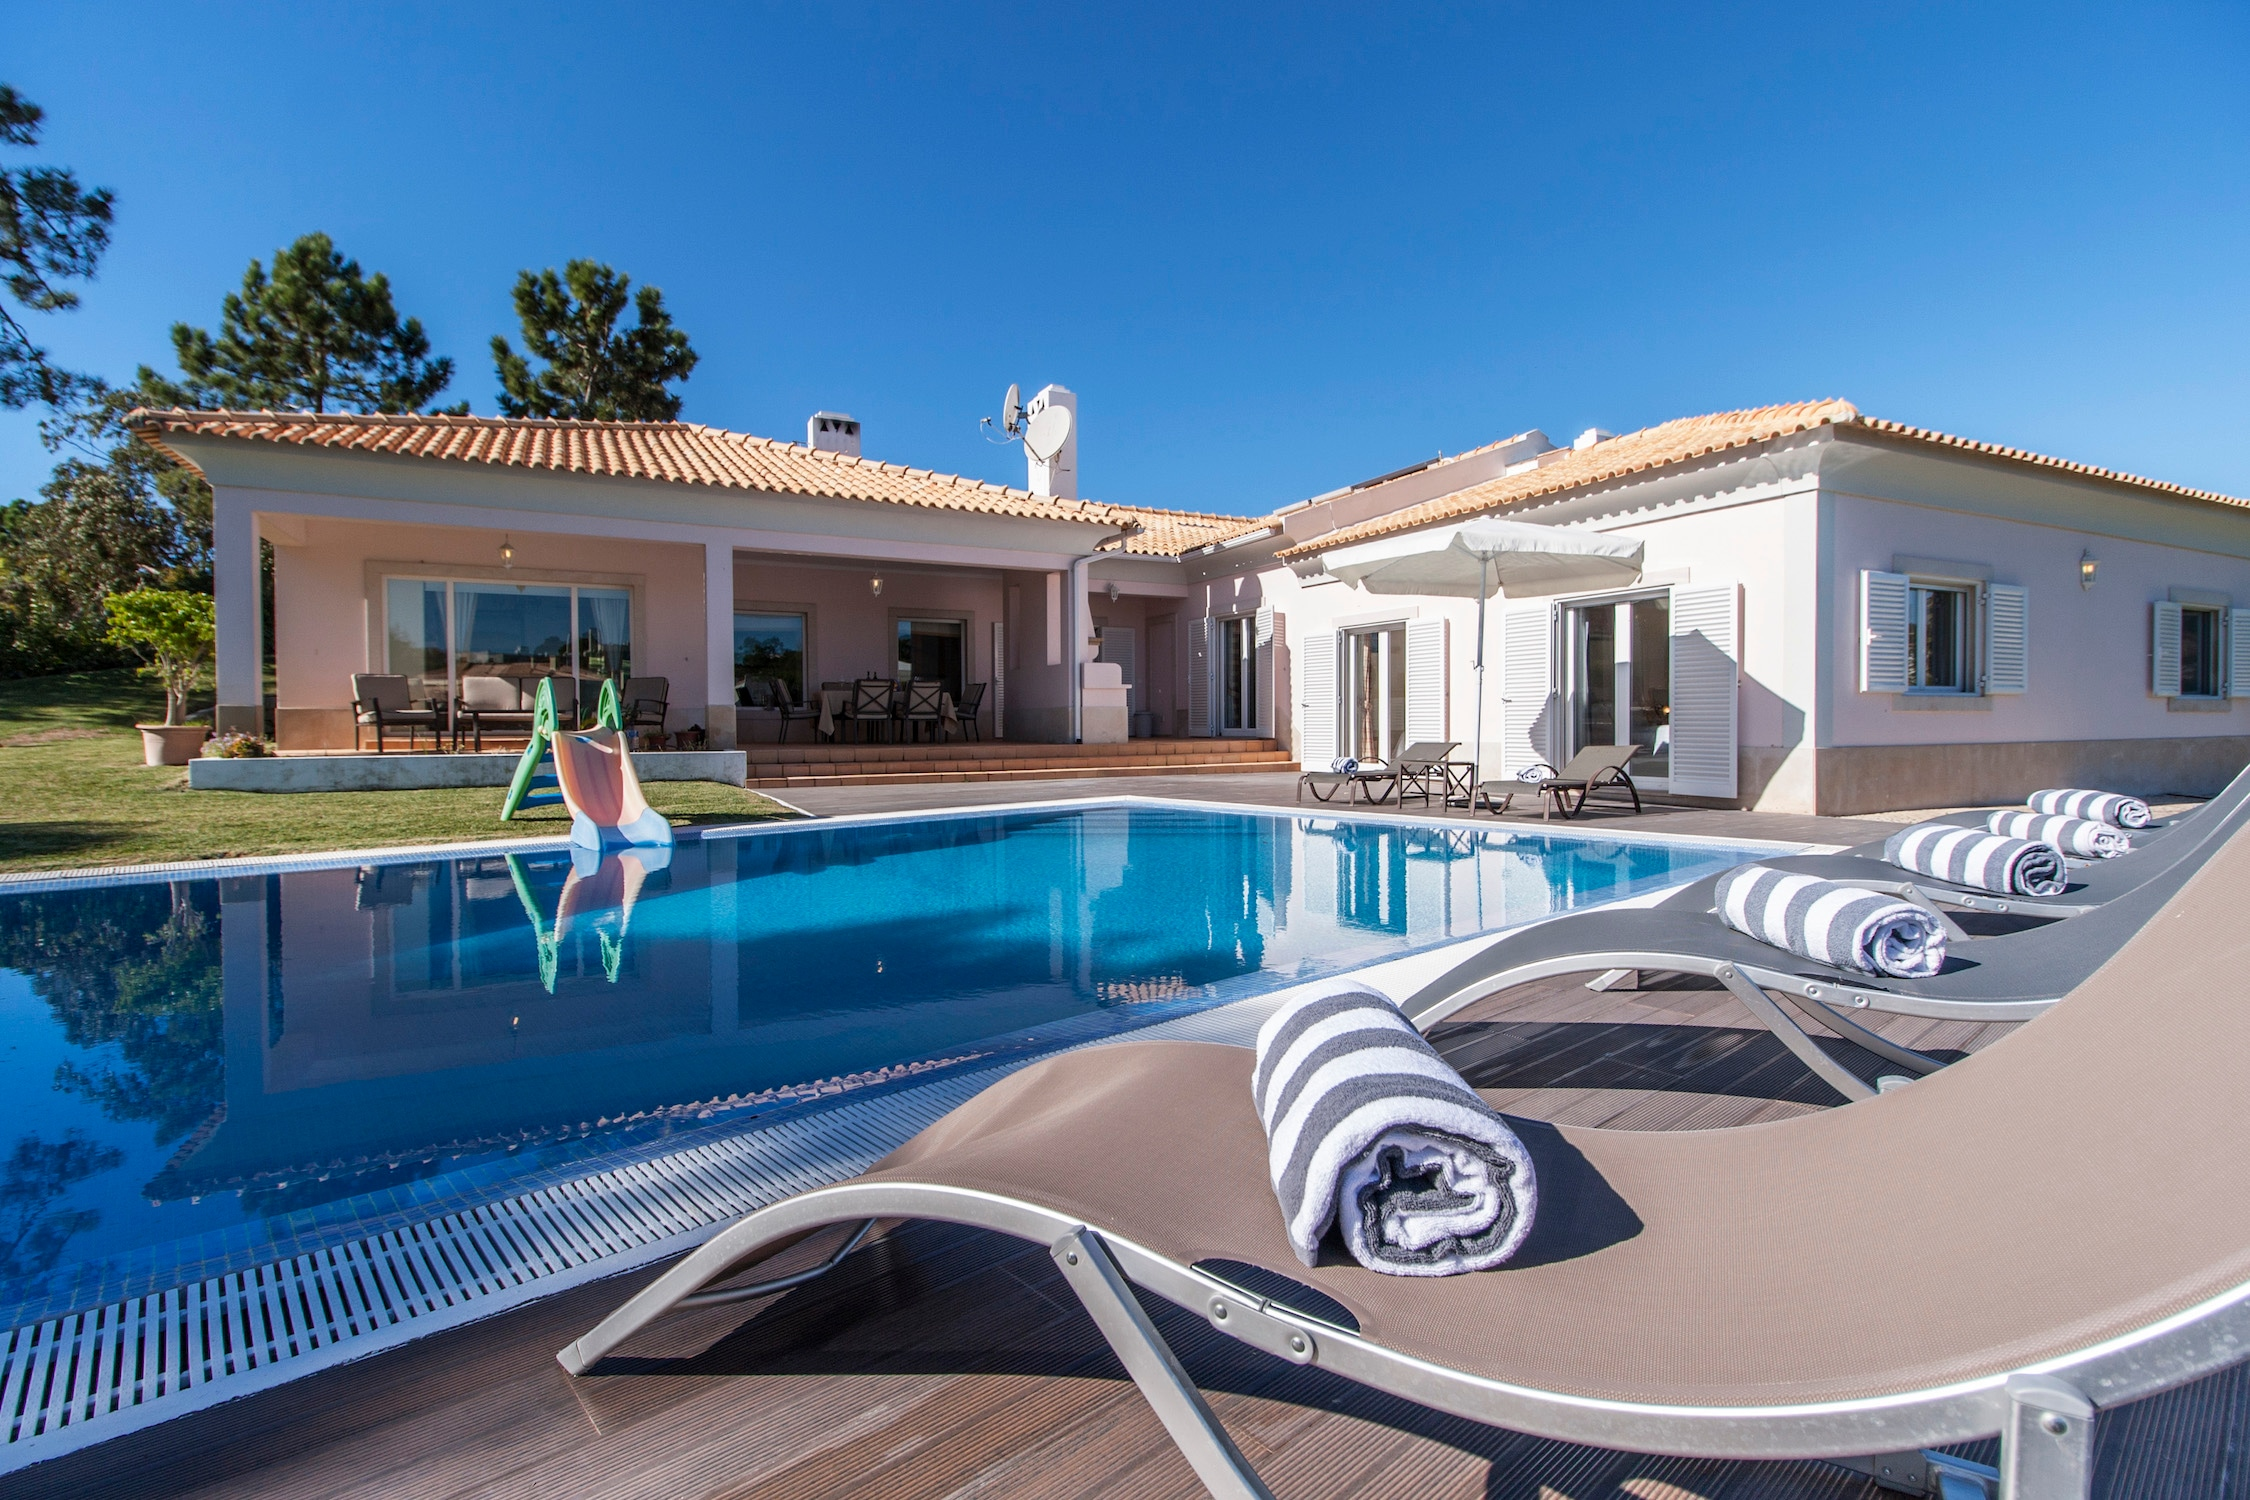 Property Image 1 - Lovely five bedroom villa within walking distance from the beach